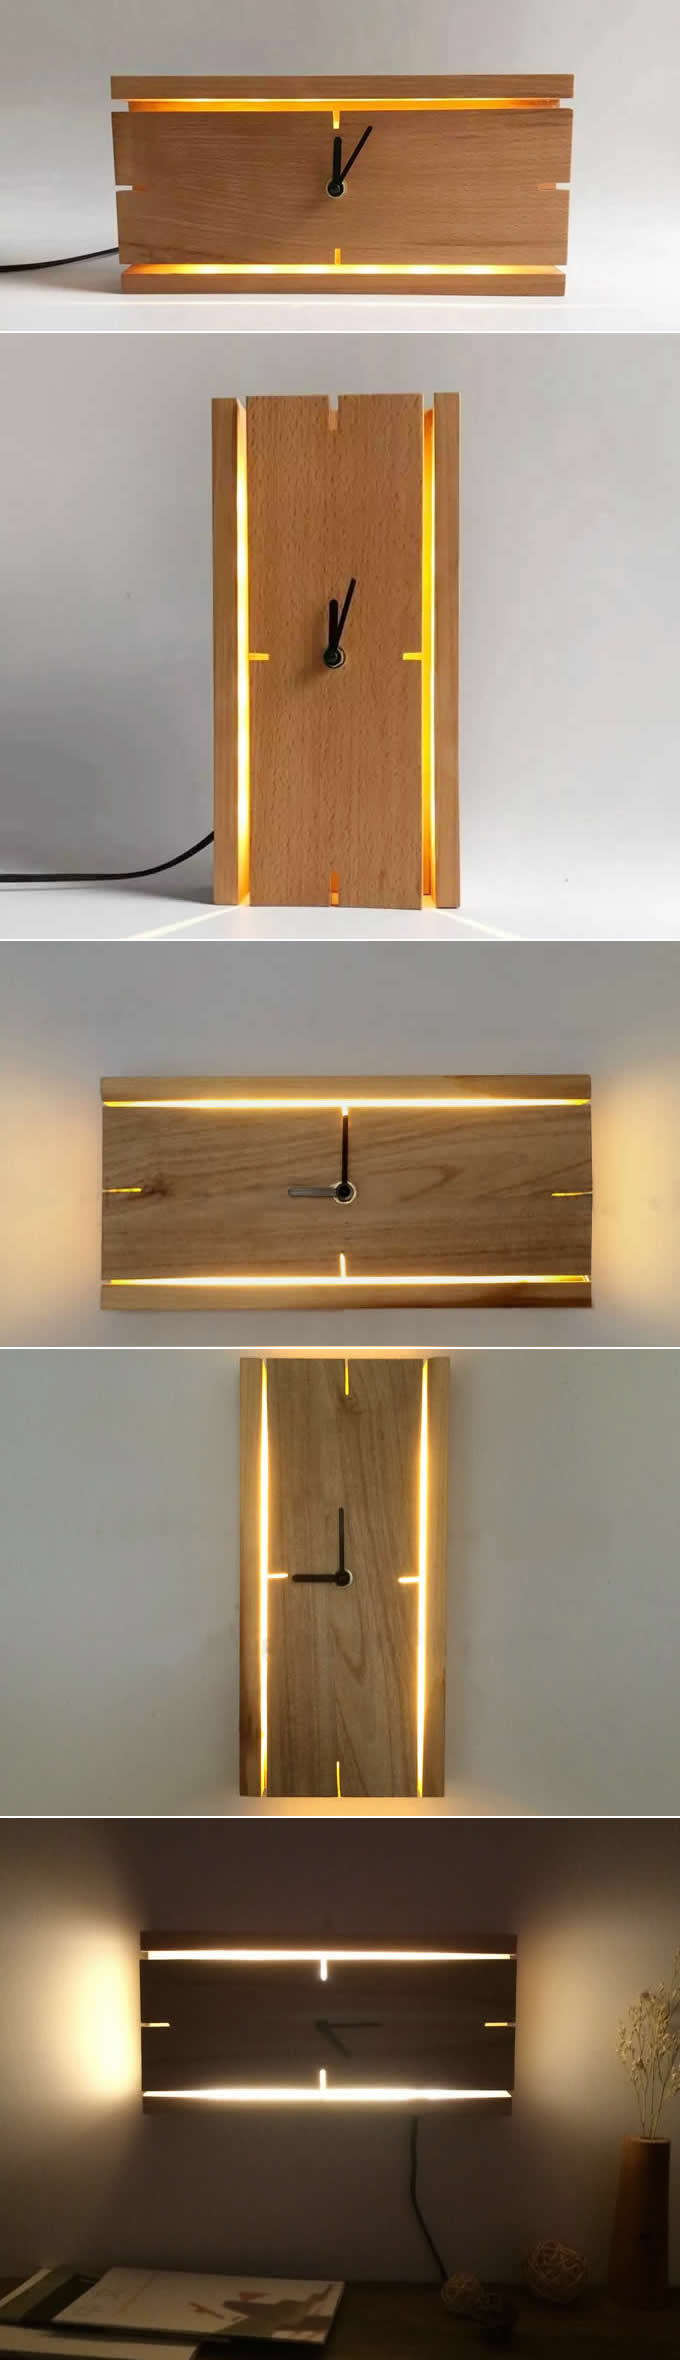 Led Wanduhren Rectangle Wooden Wall Clock With Led Night Light Diy Pinterest